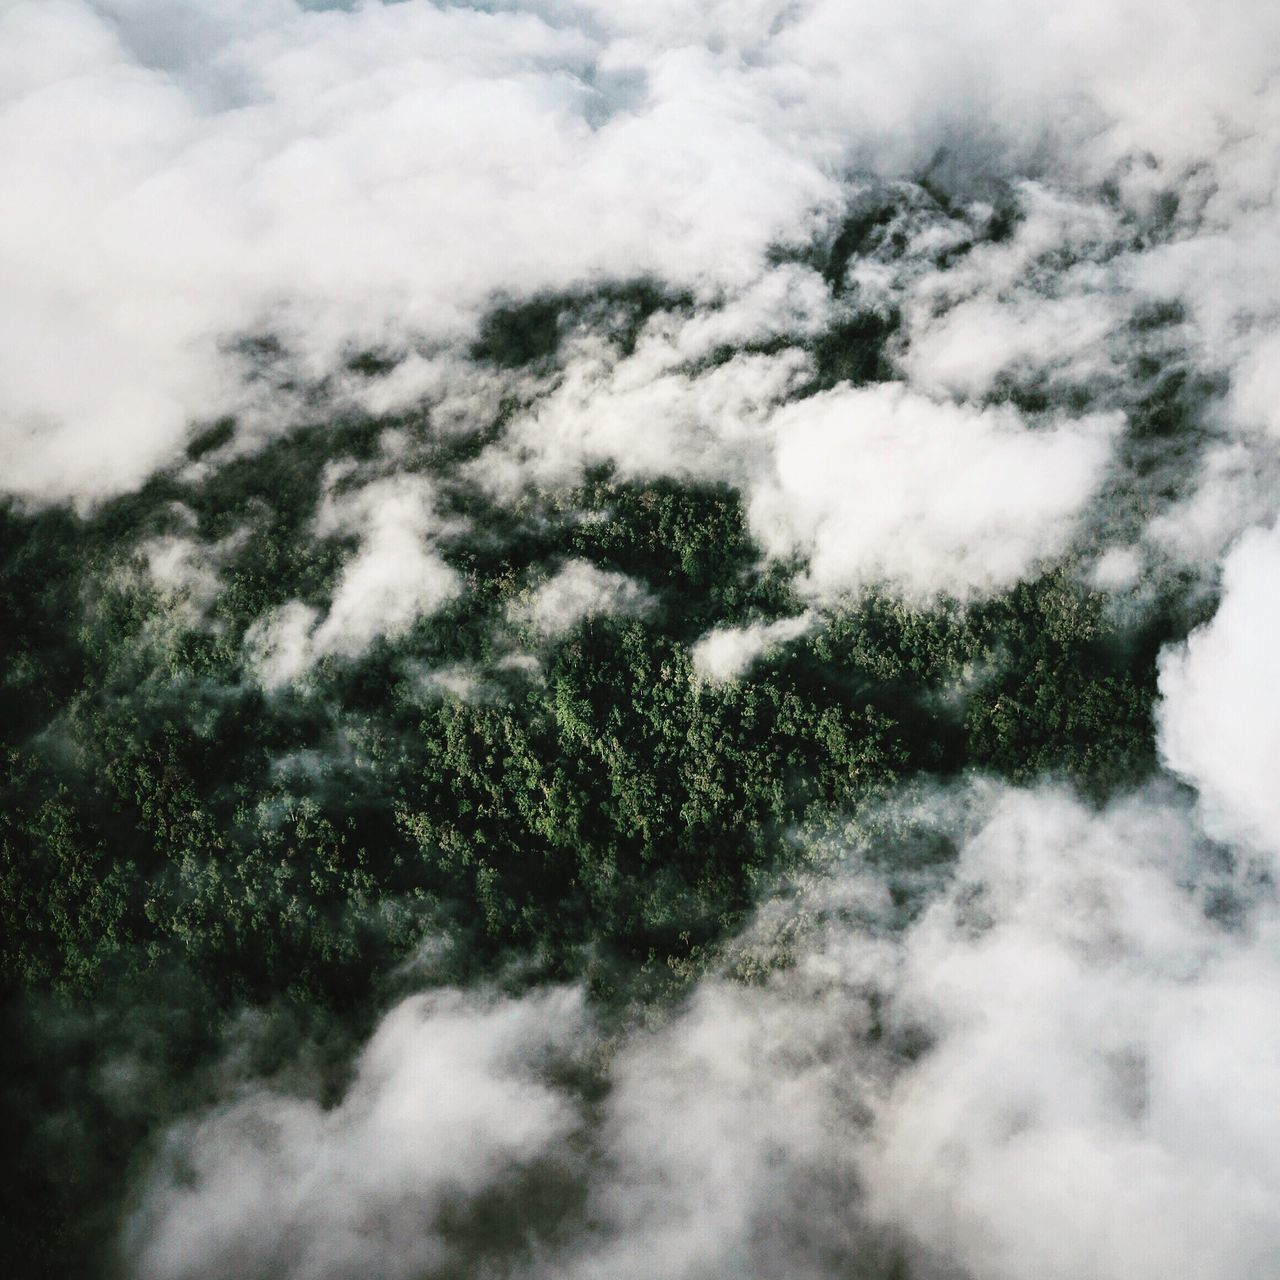 View From Above Birds Eye View Flying From An Airplane Window Forest Rainforest Jungle Tropical Tropical Paradise Cloud Clouds Green Nature Beauty In Nature Scenics Tranquility Cloudscape Day Outdoors Aerial View Remote Traveling Maluku  ASIA My Year My View